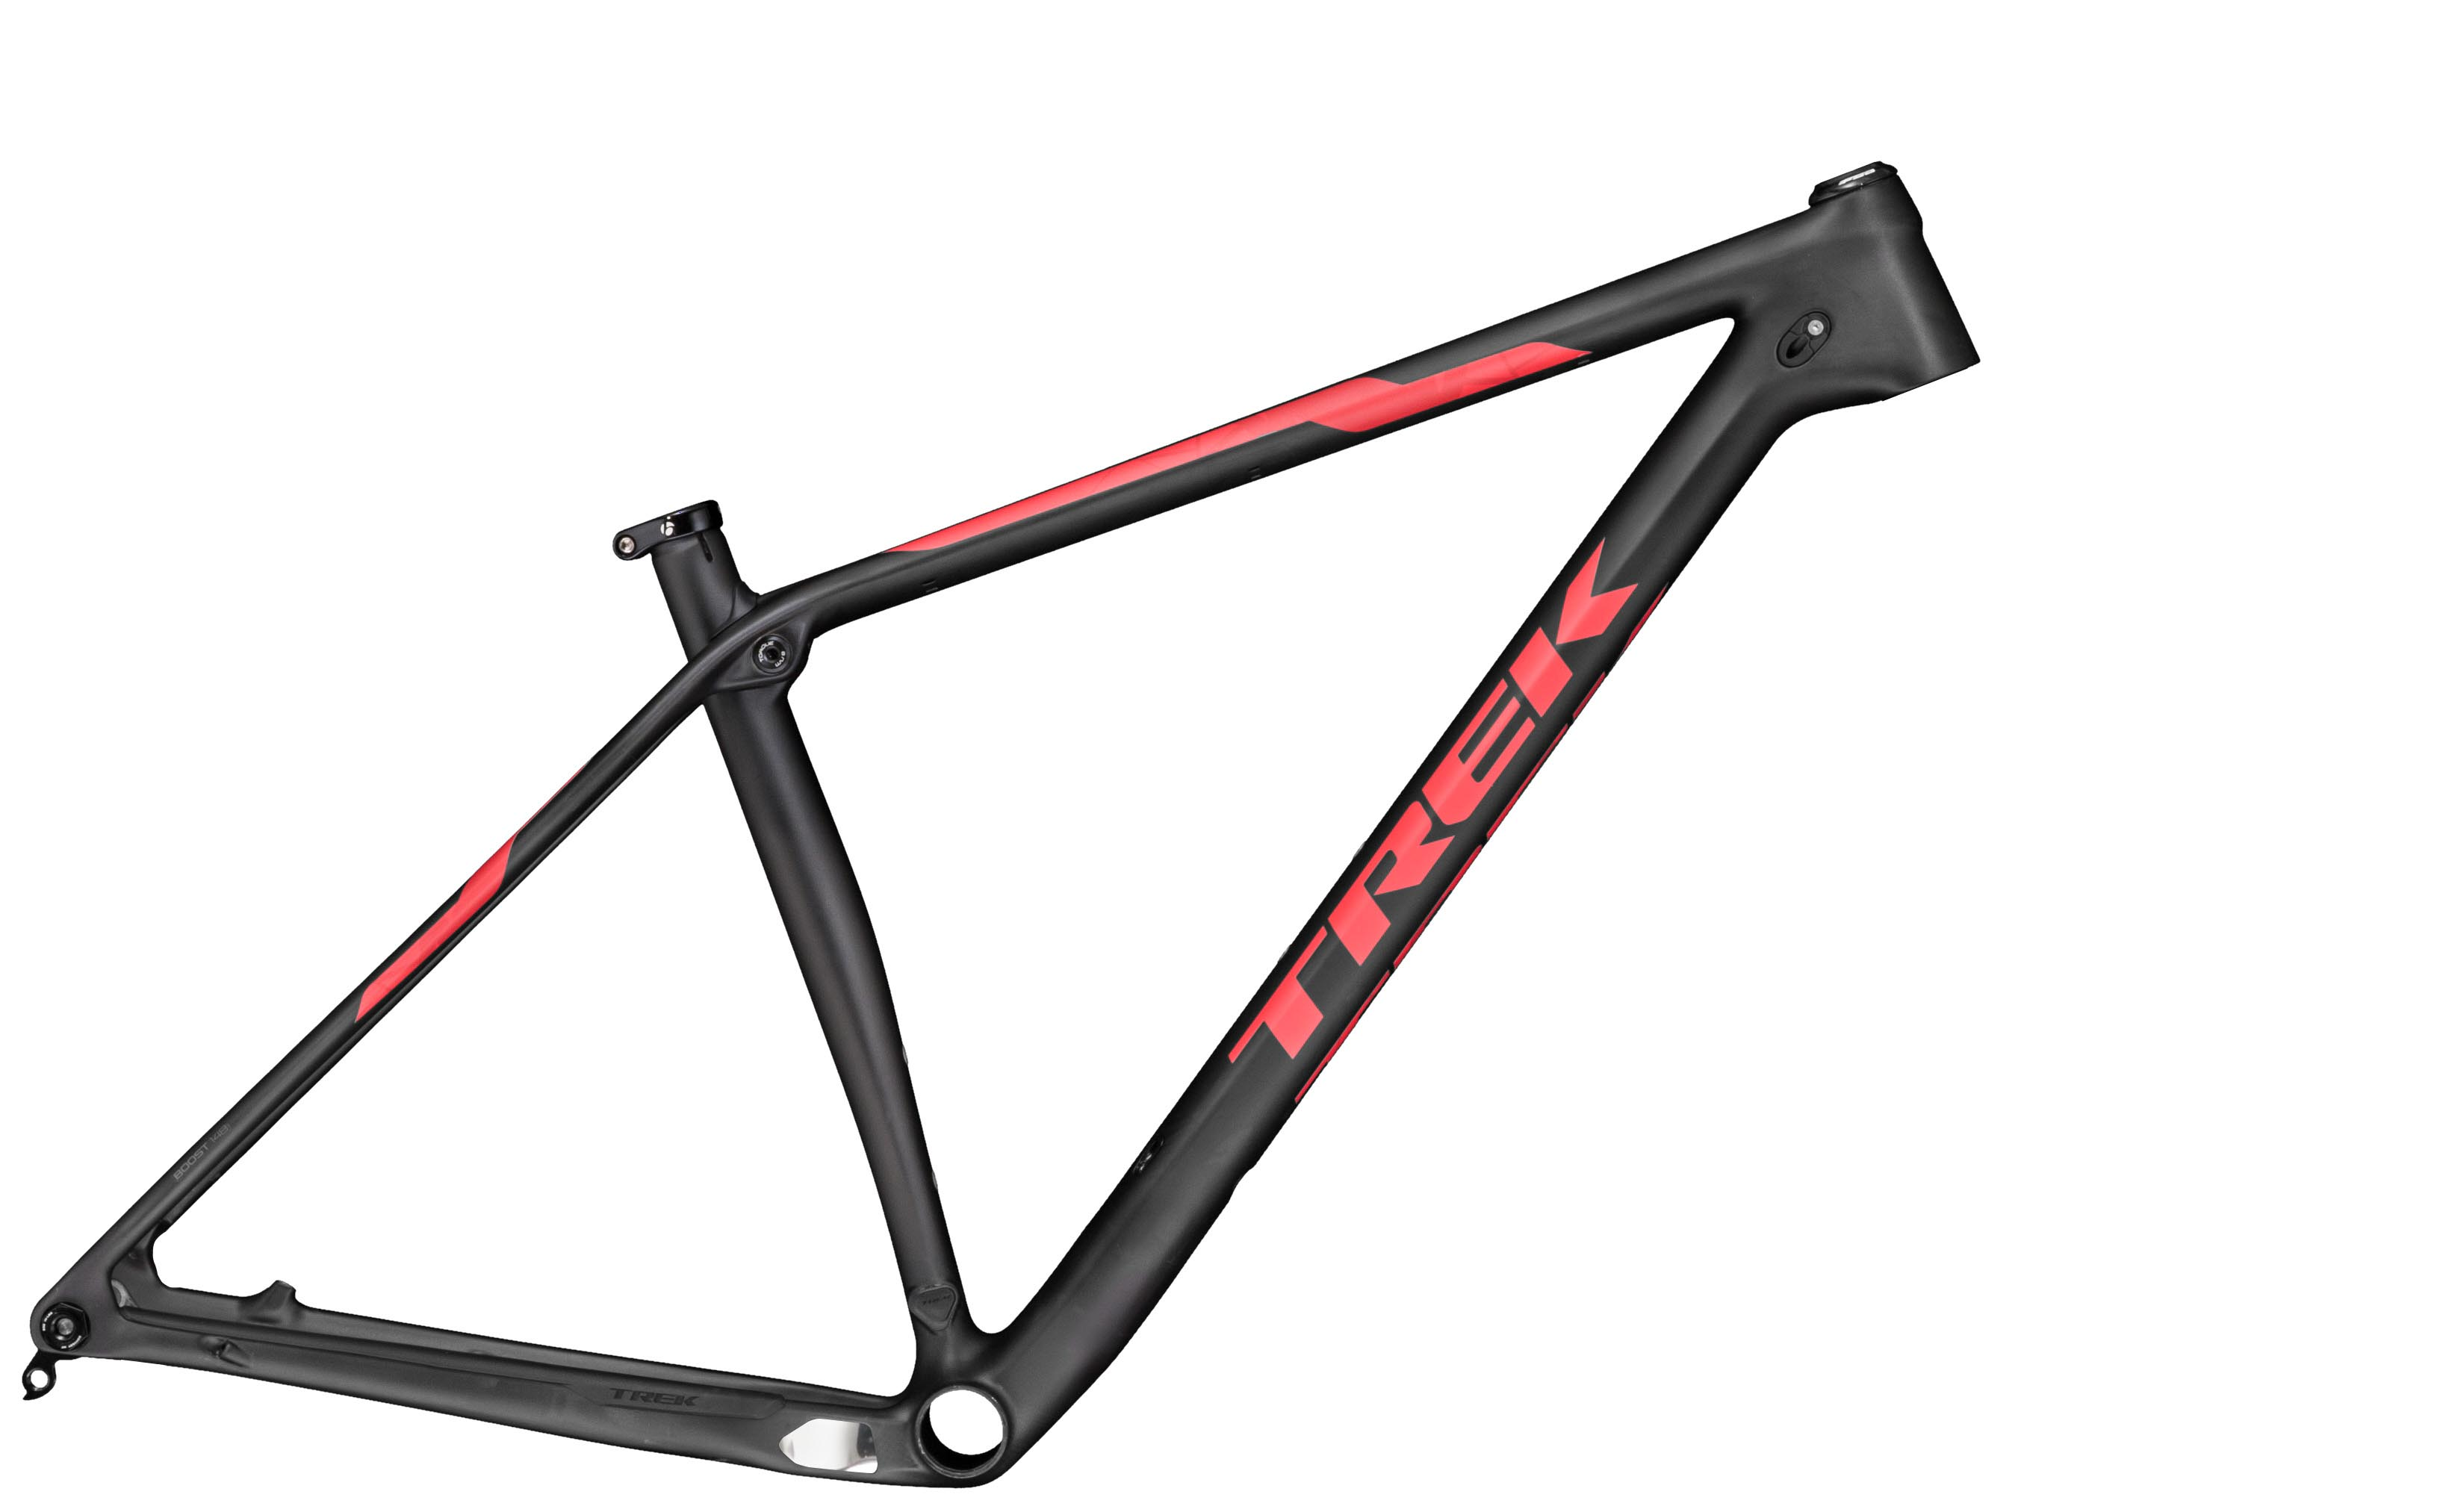 Trek Smooths Out XC Racing with new IsoSpeed Procaliber SL, and Revamped Top Fuel